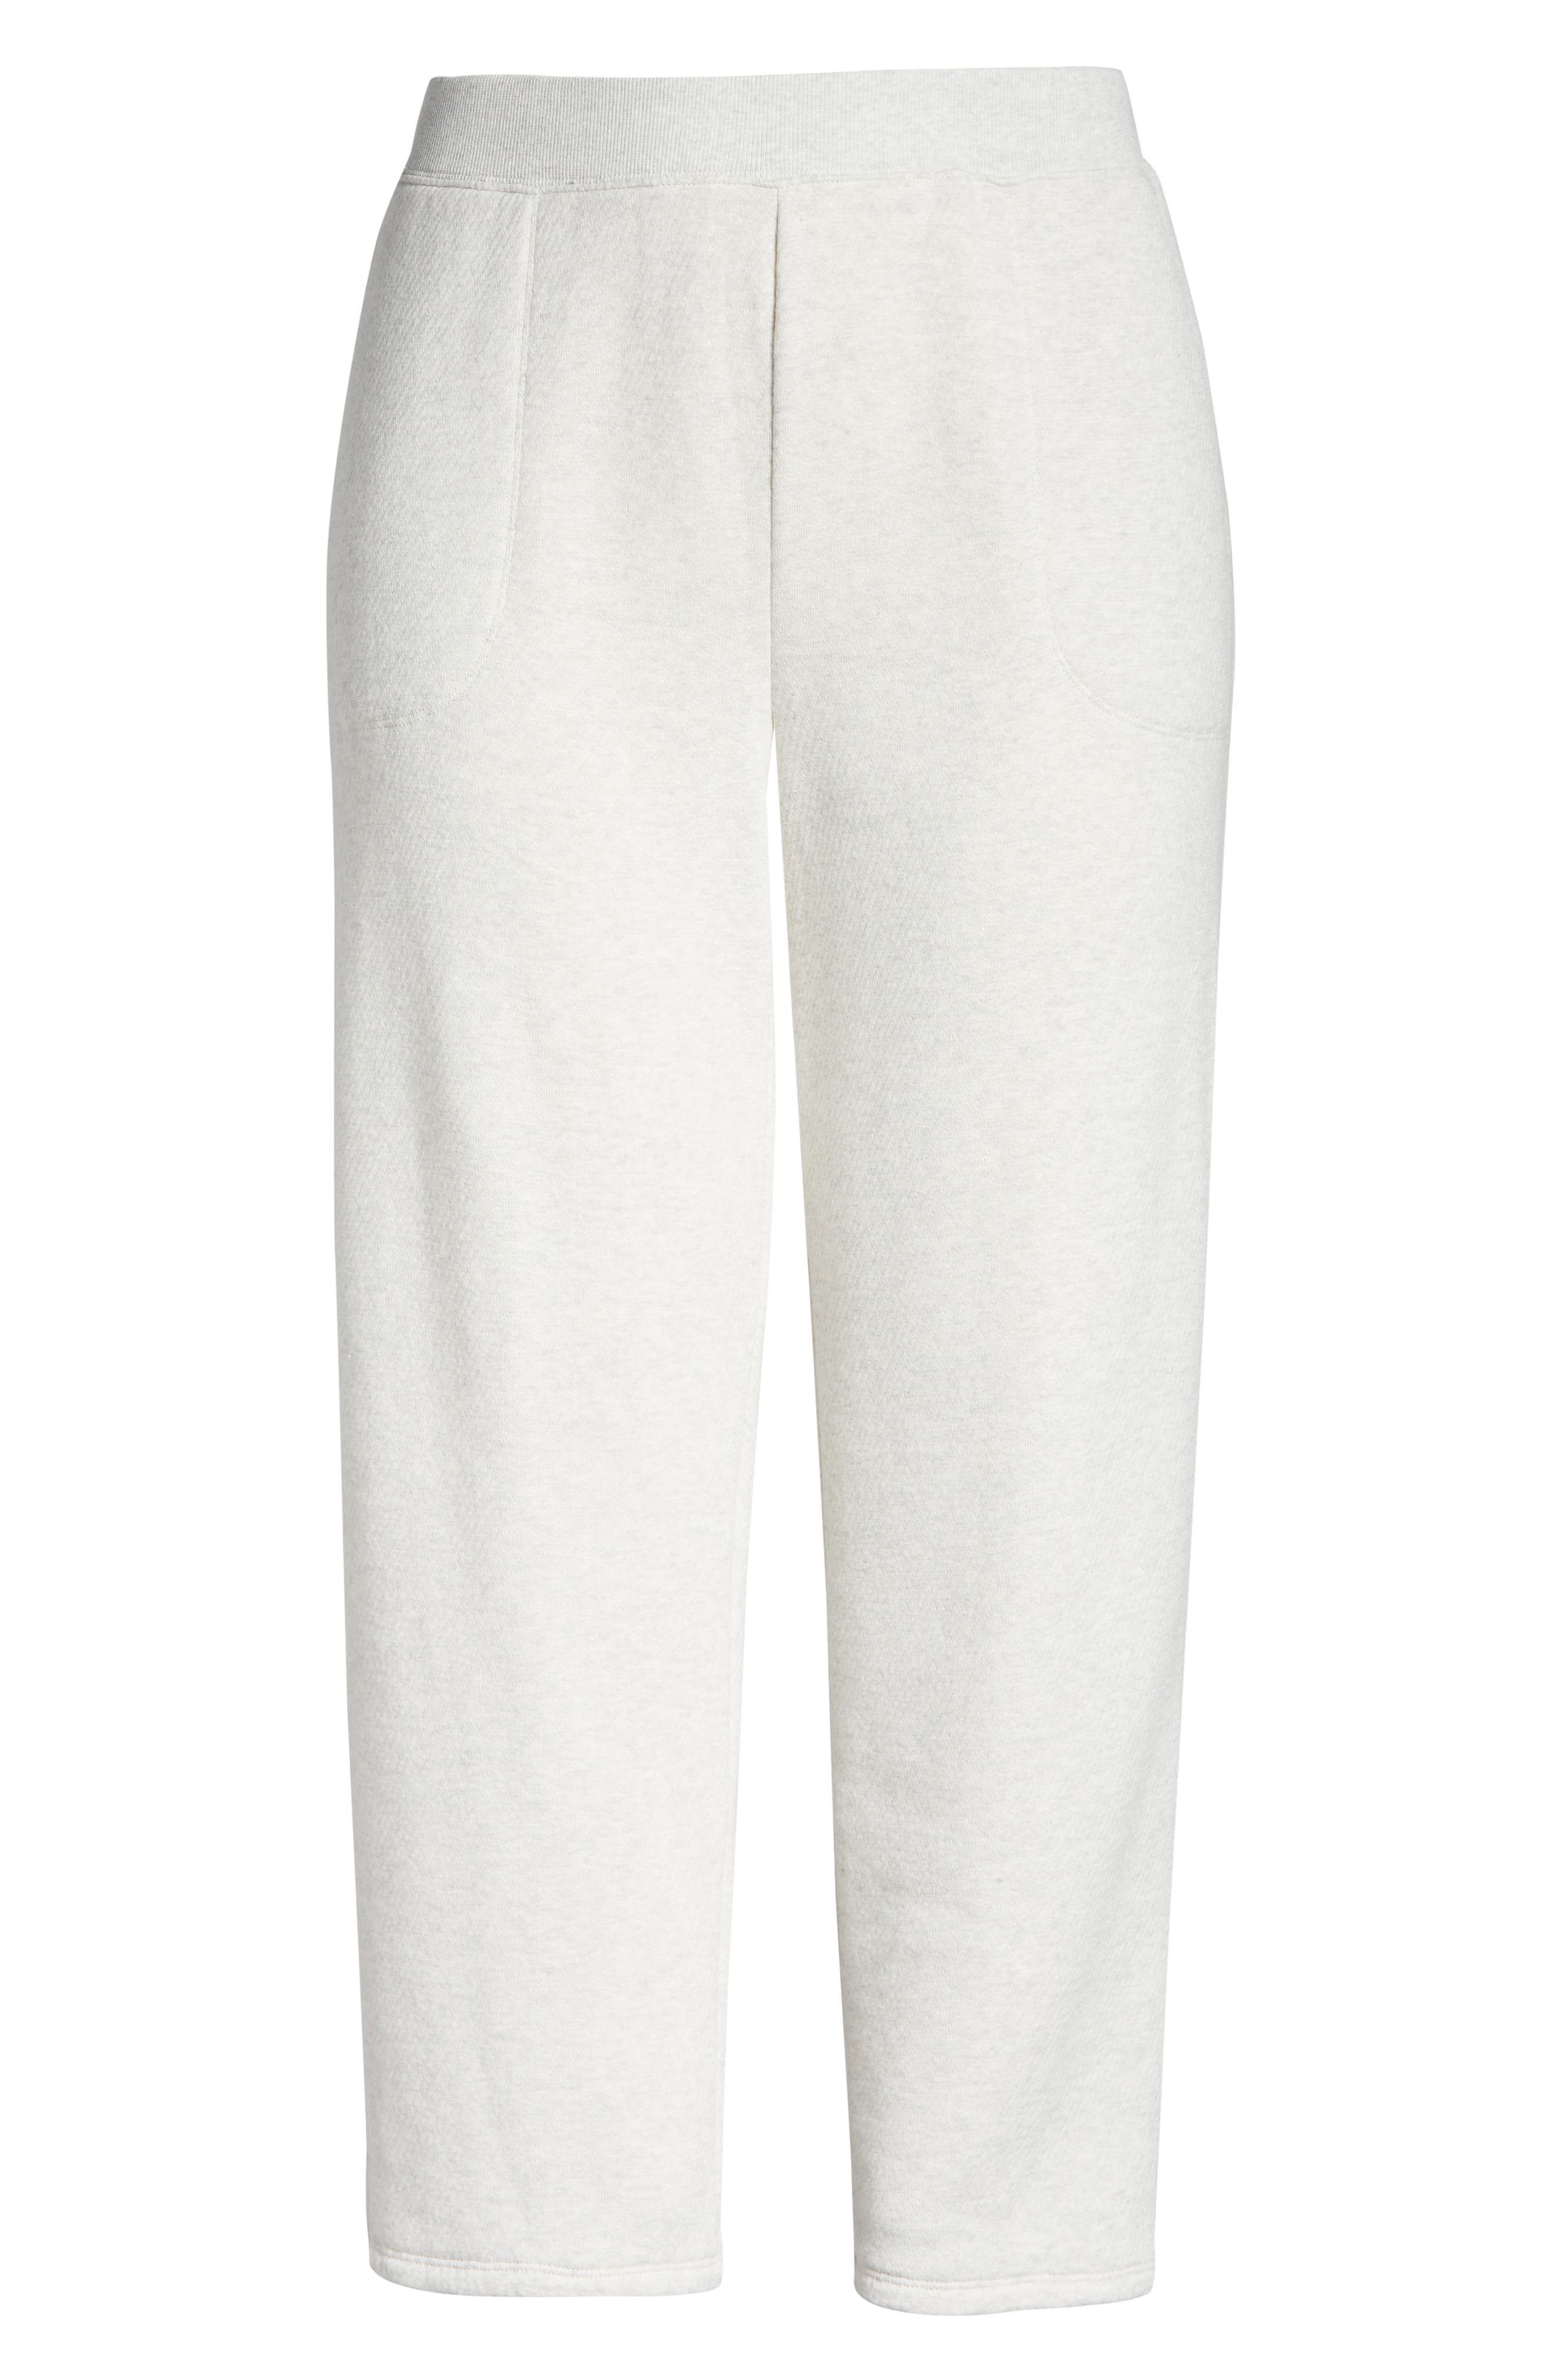 Plus Women's Madewell Mwl Airyterry Stitched Pocket Tapered Sweatpants